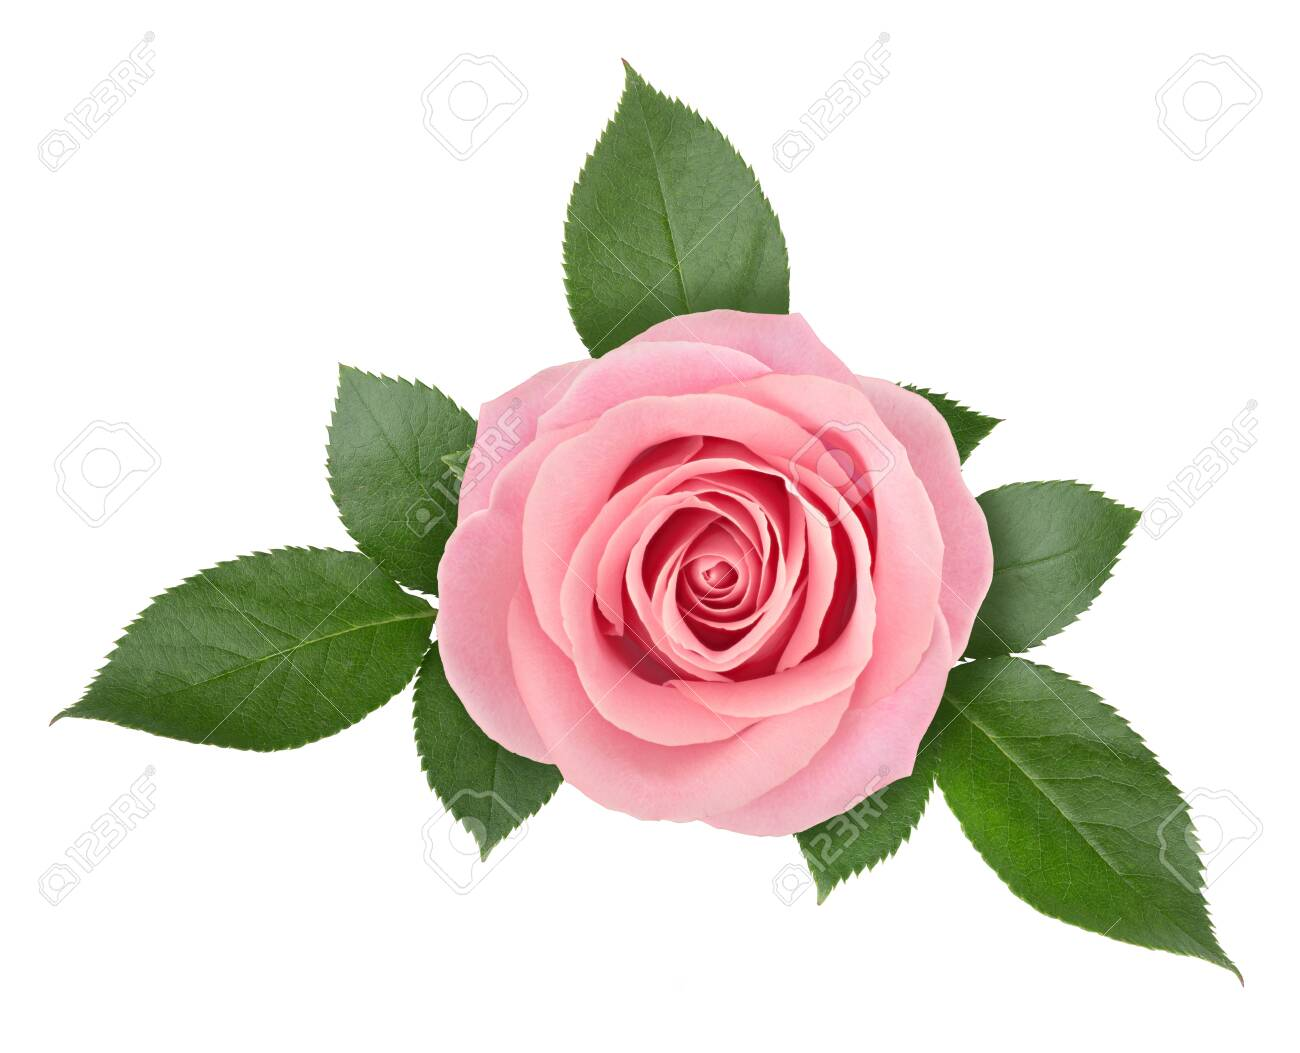 Rose flower arrangement isolated on a white background with clipping path. - 152887197